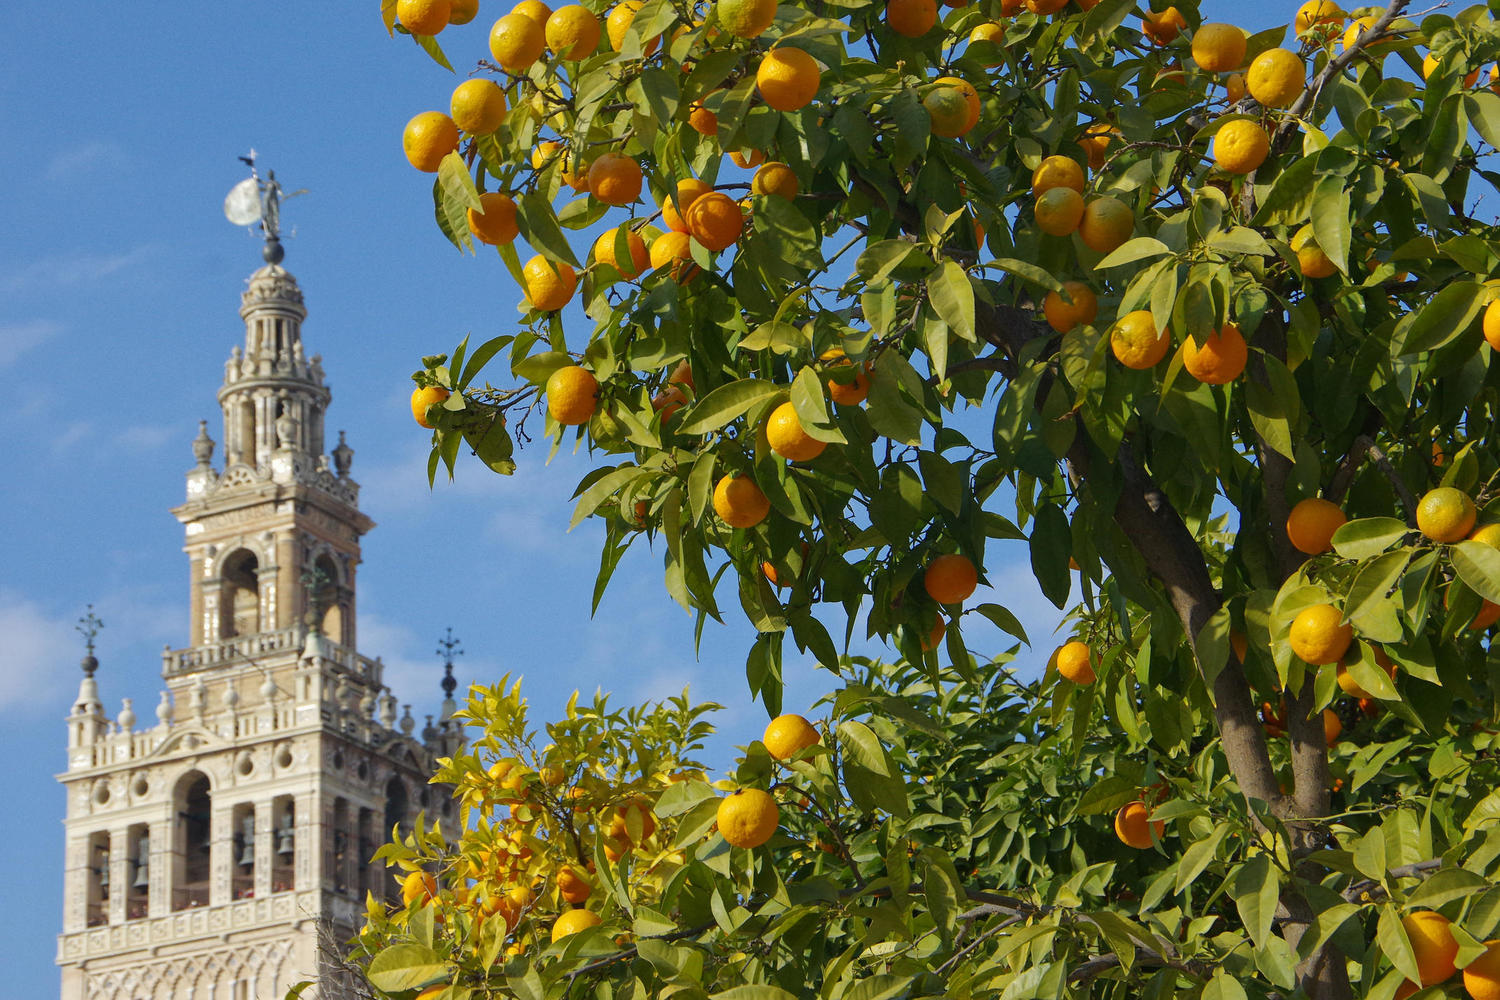 Seville's Giralda rises above the orange trees